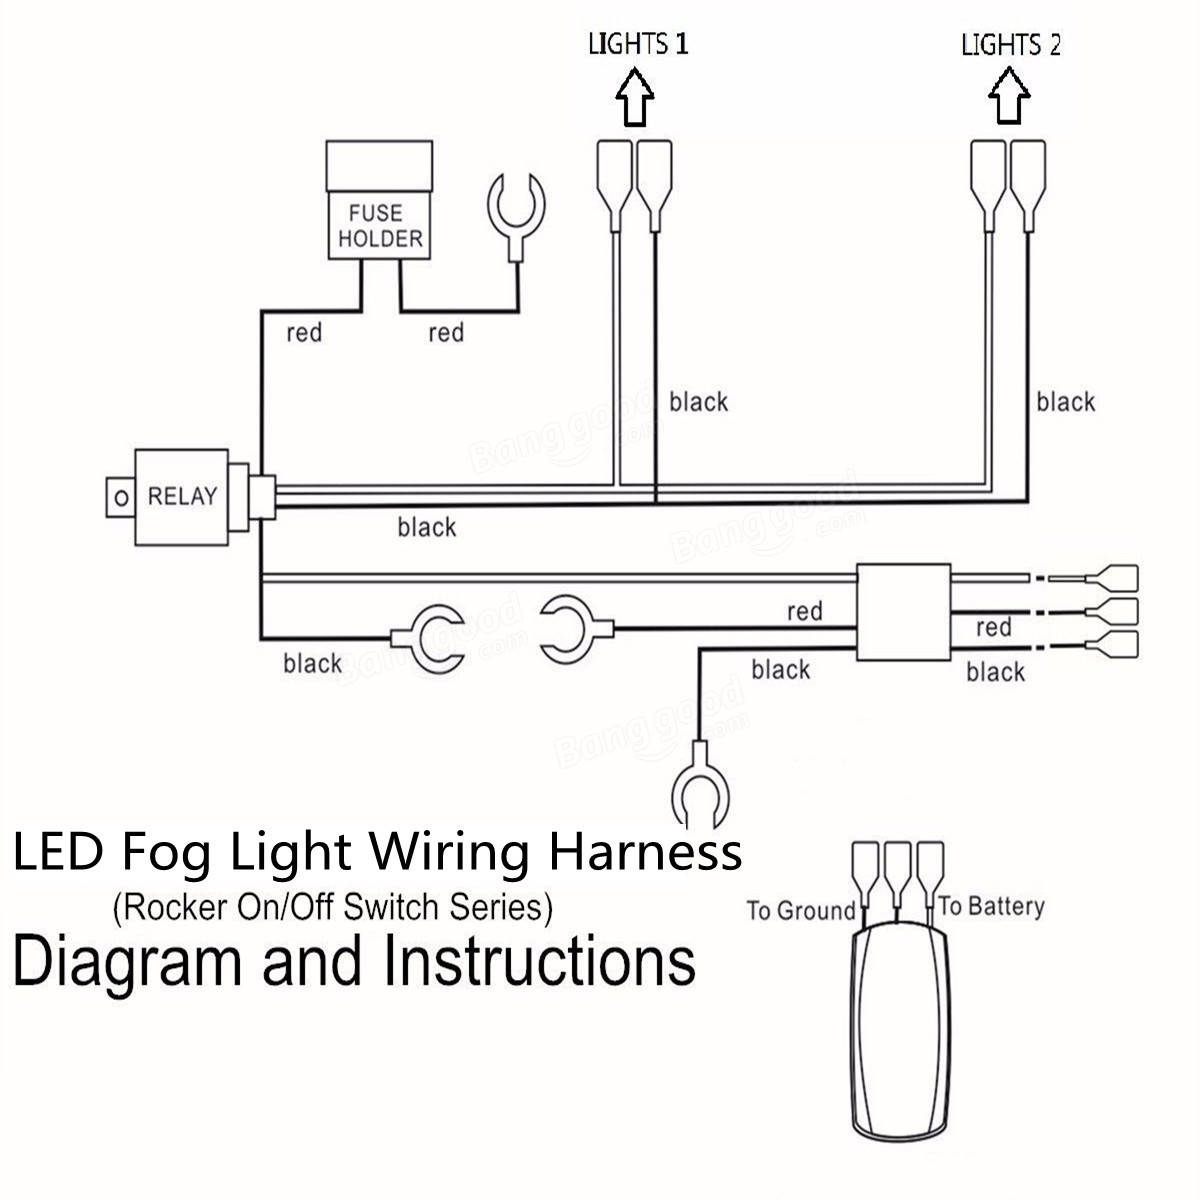 12v rocker switch fog light wiring diagram circuit diagram symbols u2022 rh armkandy co Off with High Beam Fog Light Wiring Diagram Fog Light Switch Wiring